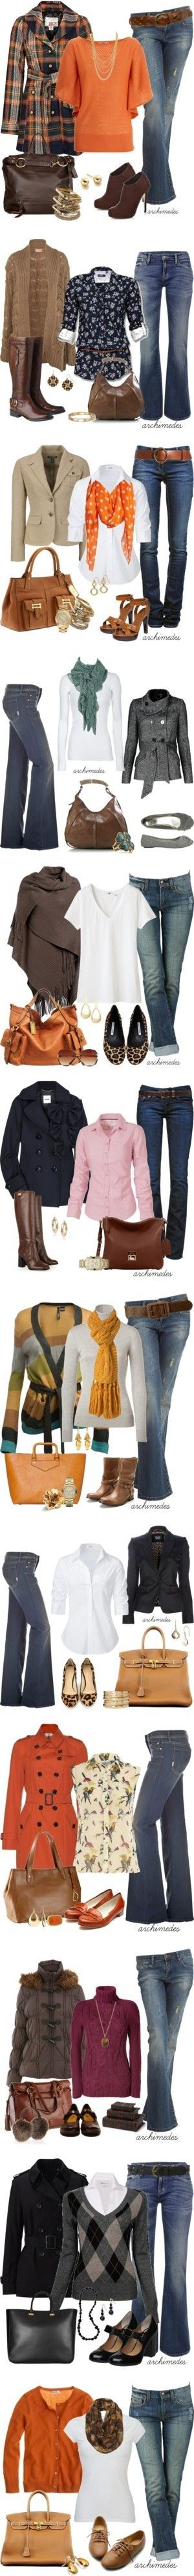 all of these outfits would be perfect for fall!